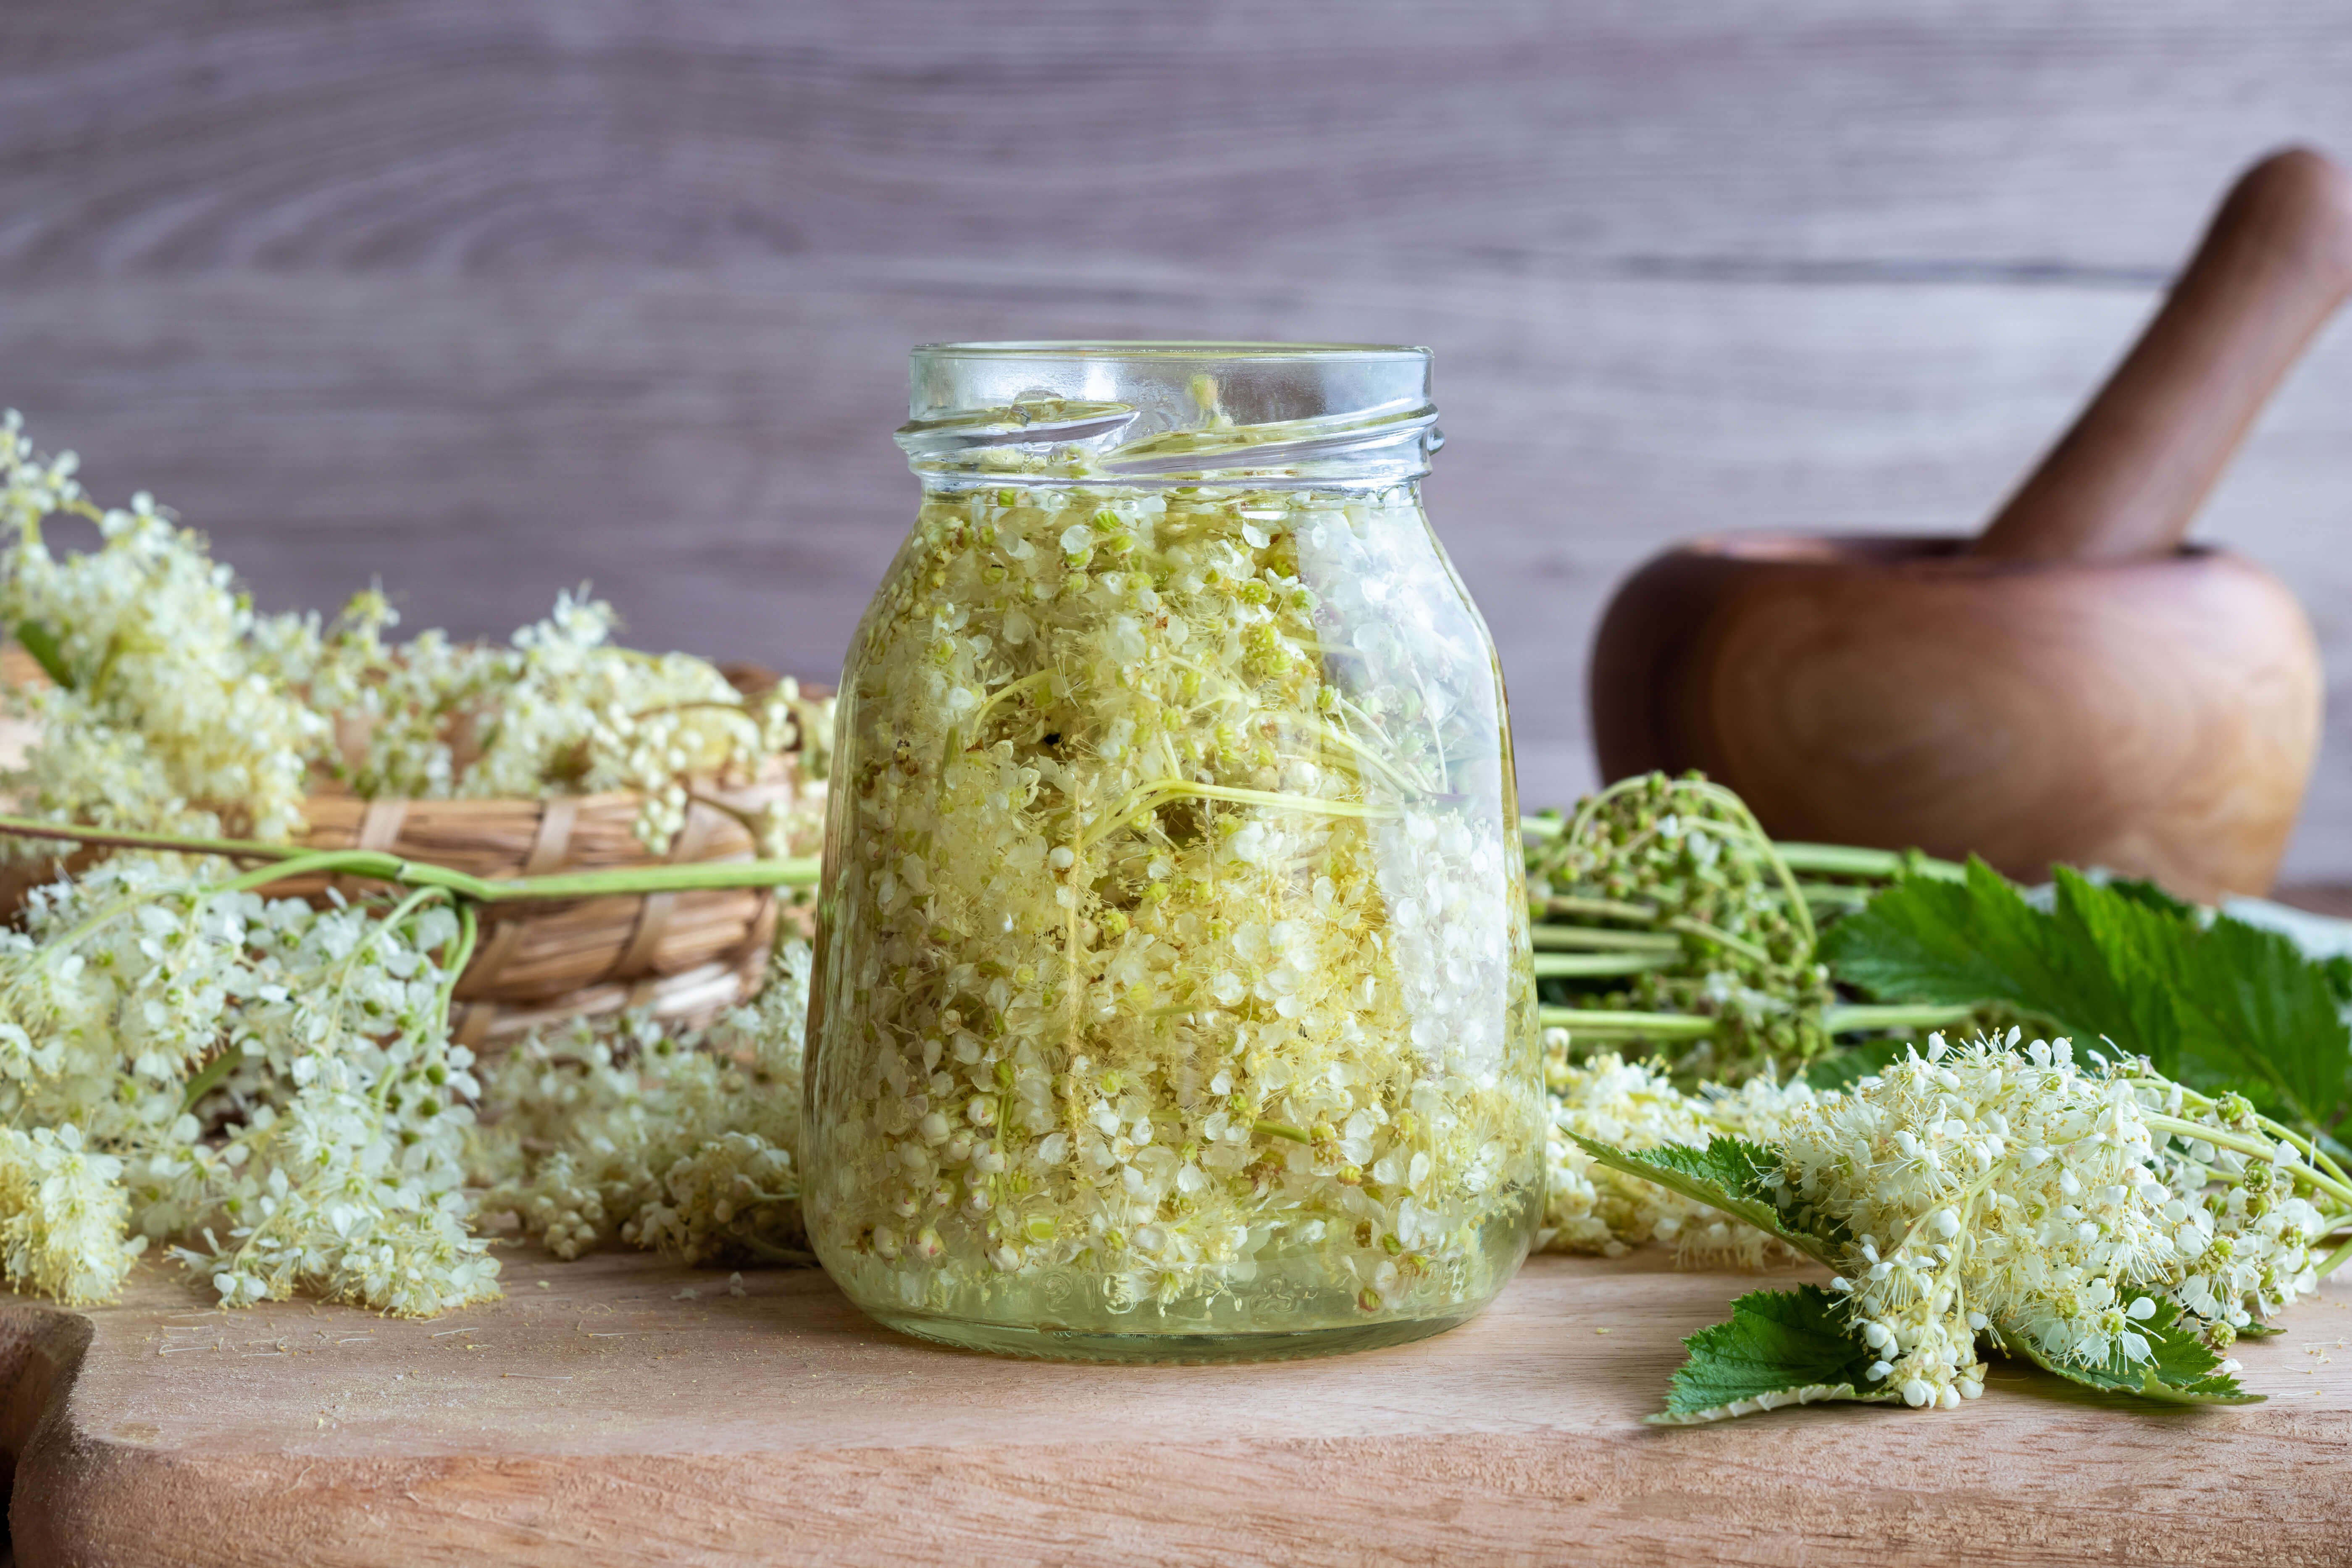 A jar of meadowsweet, to be used for its anti-inflammatory properties.